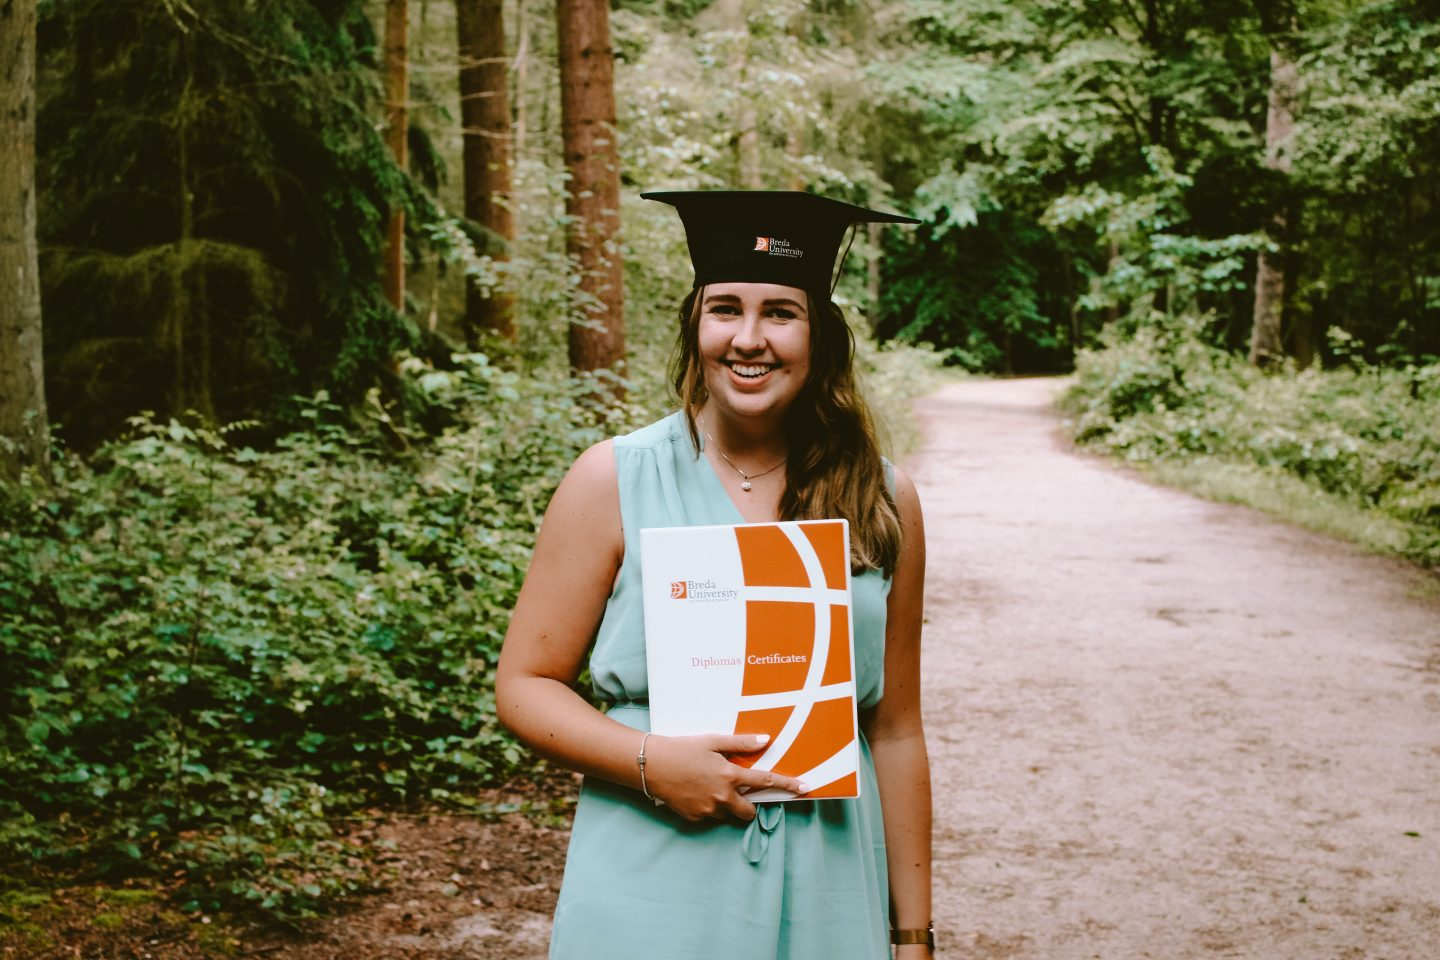 graduation pictures in the forest, university graduation